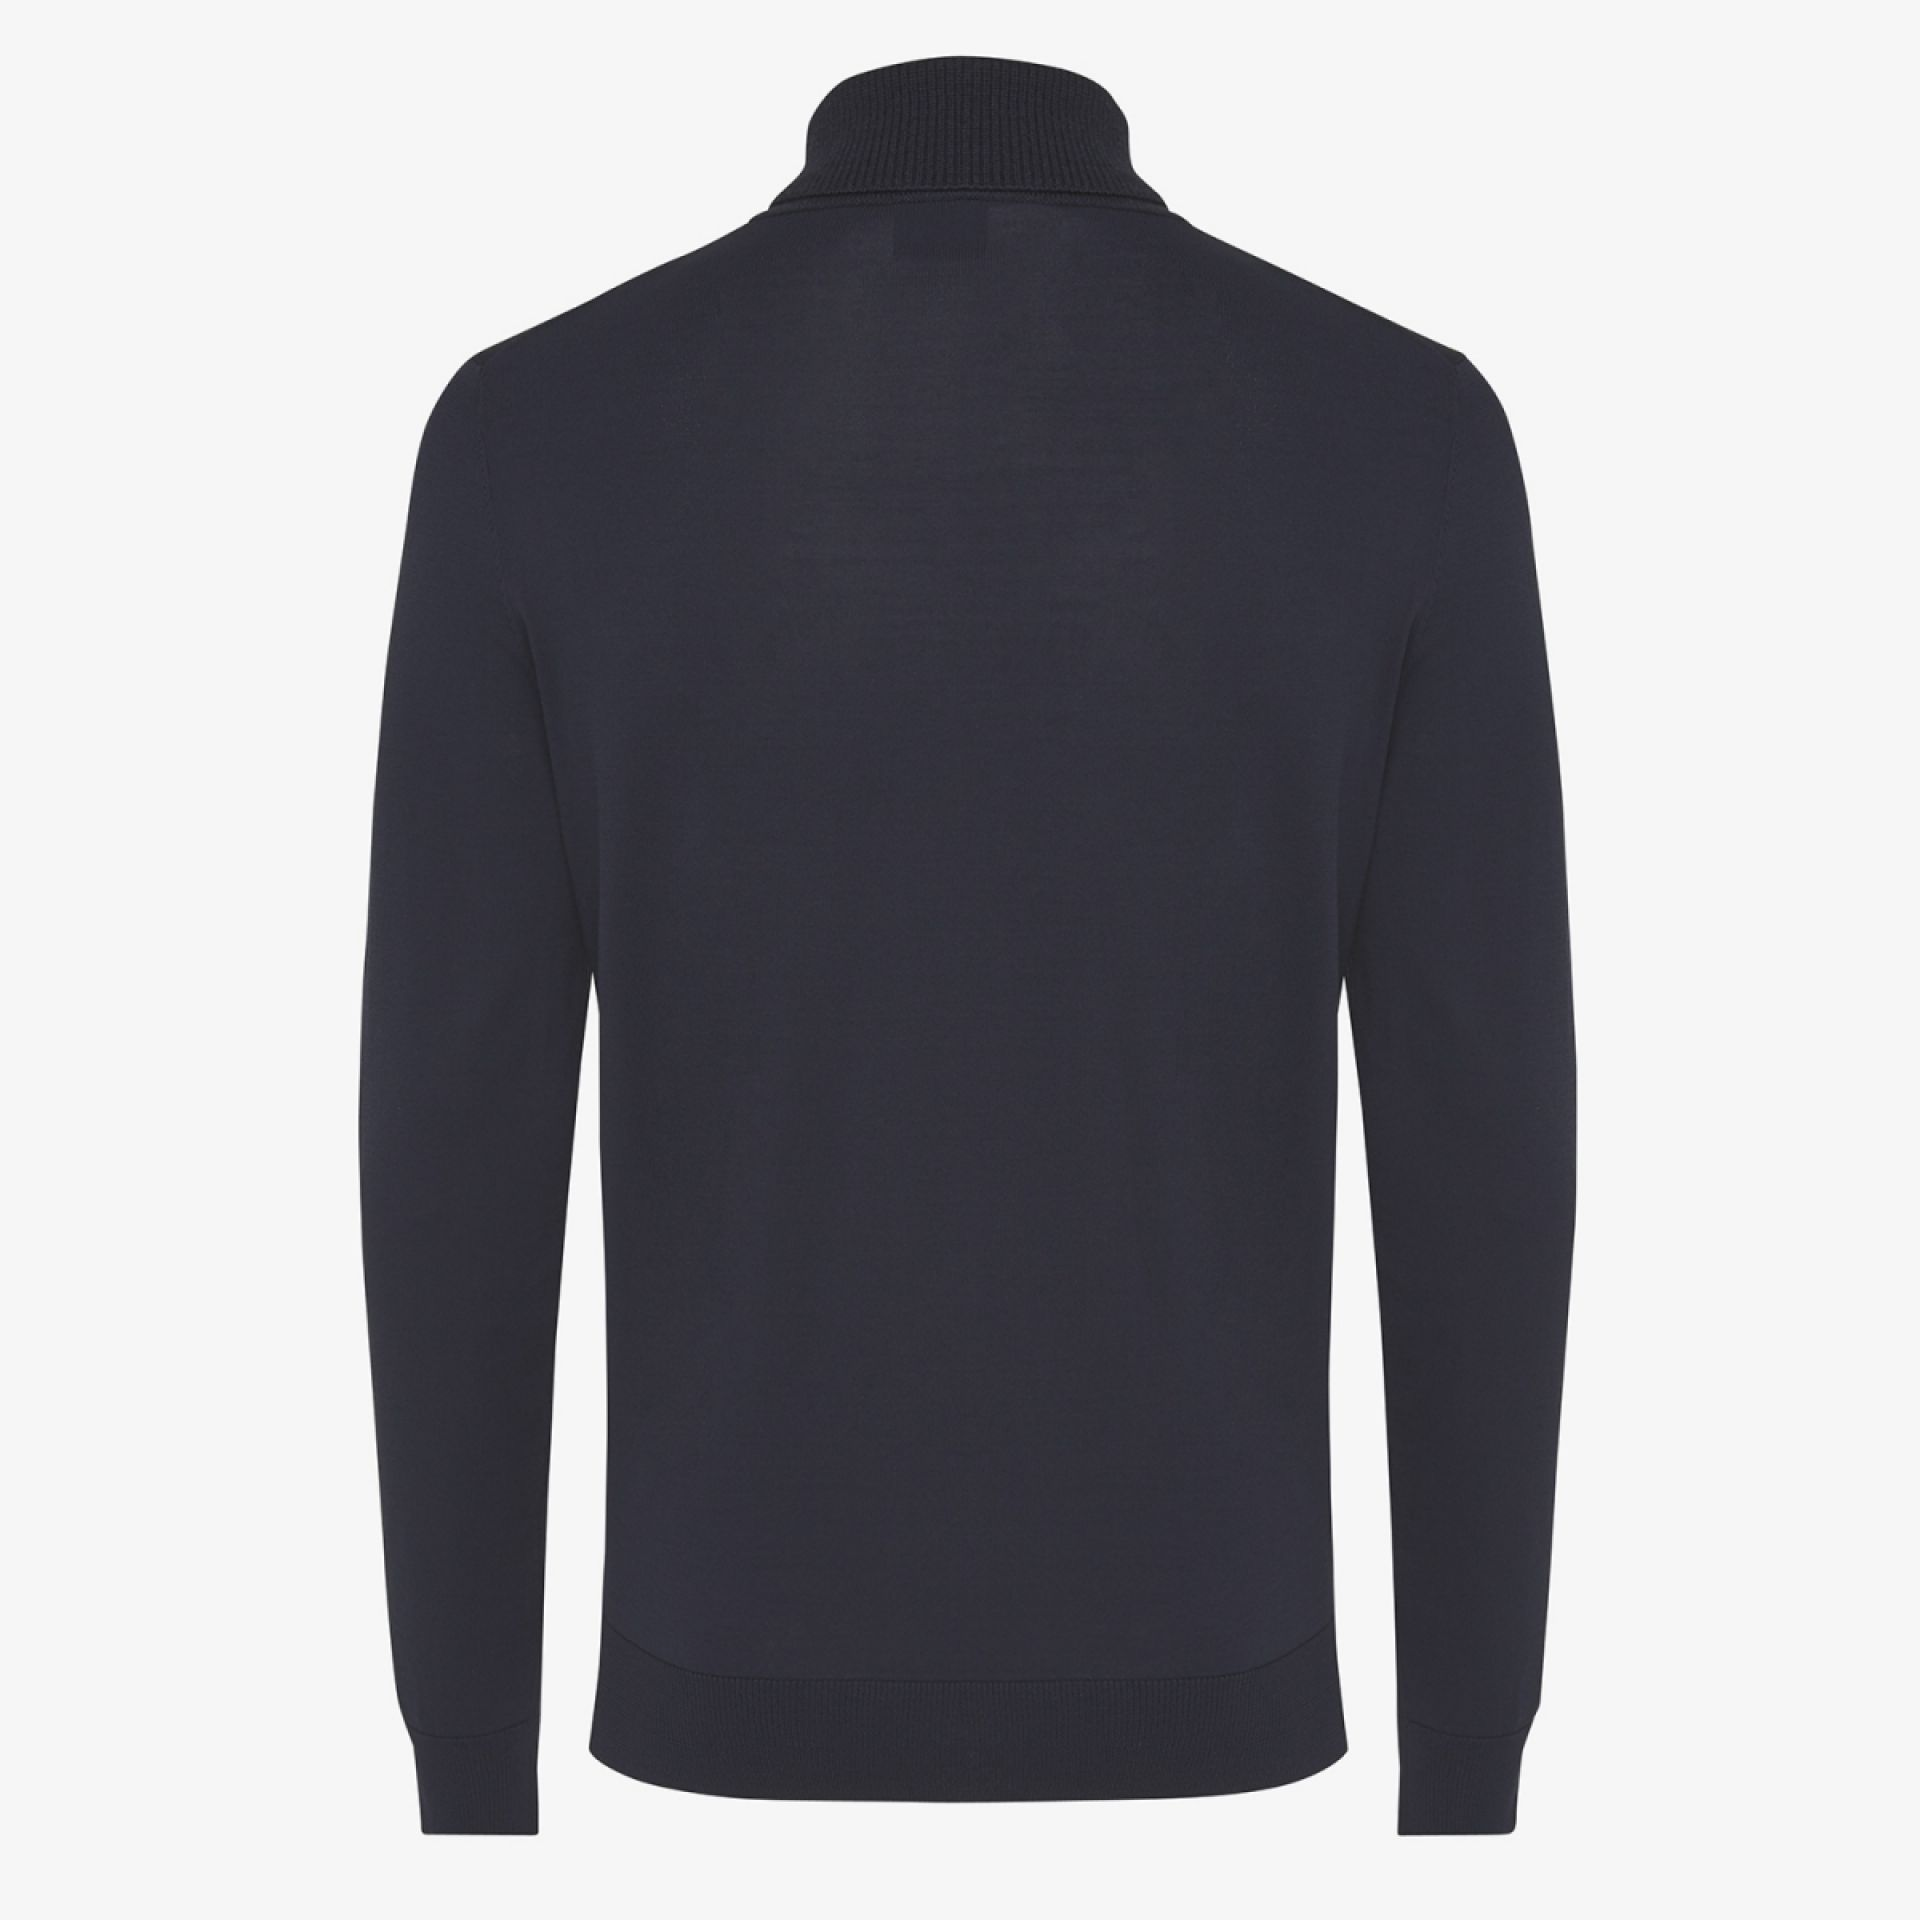 COOL DRY Coltrui Donkerblauw